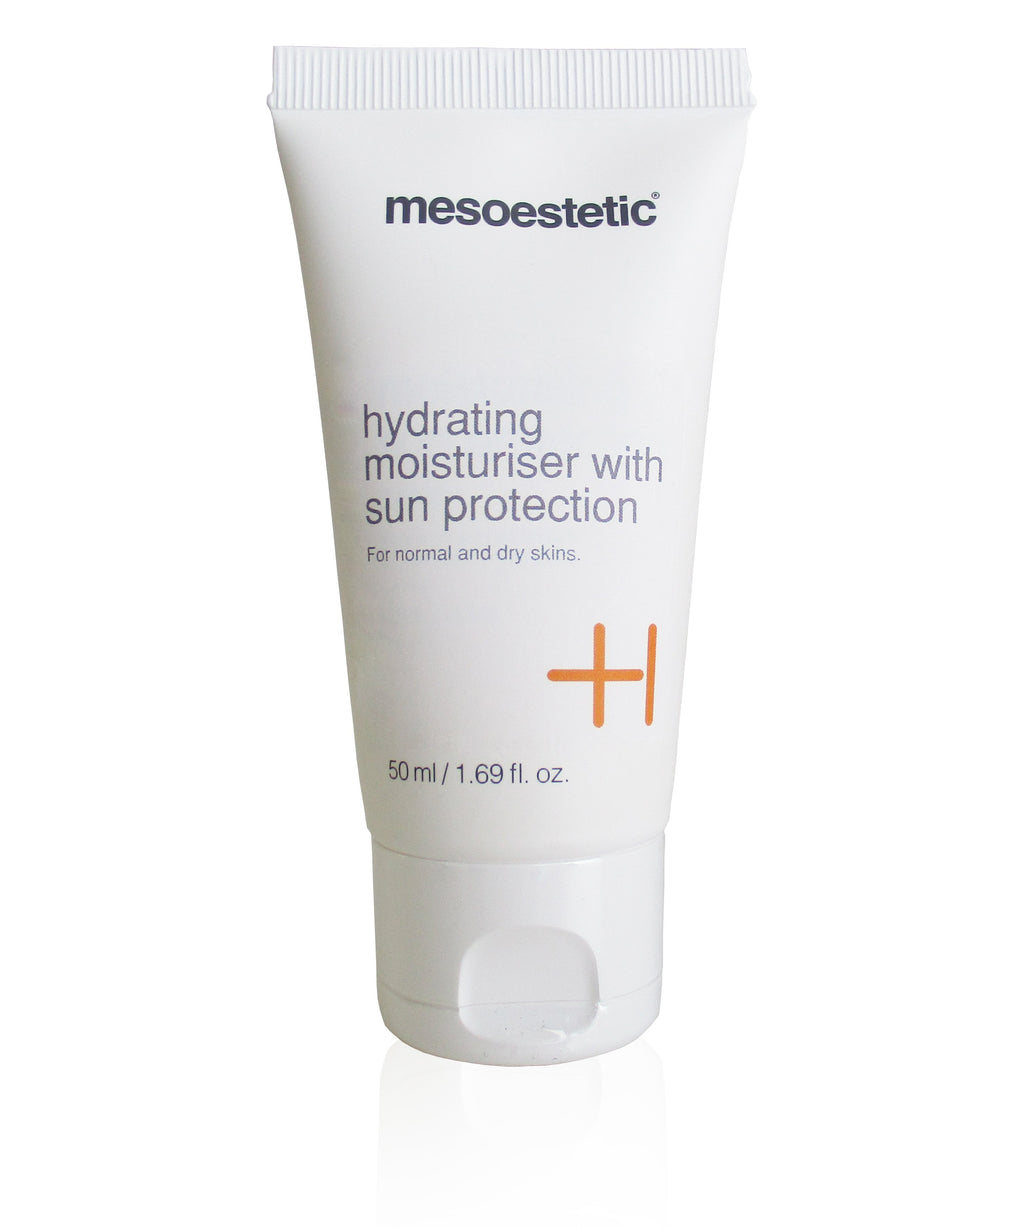 Mesoestetic sunscreen Mesoestetic Hydrating Moisturiser With Sun Protection 50ml - Now Replaced With Mesoestetic Mesoprotech Melan 130 Pigment Control SPF 50+